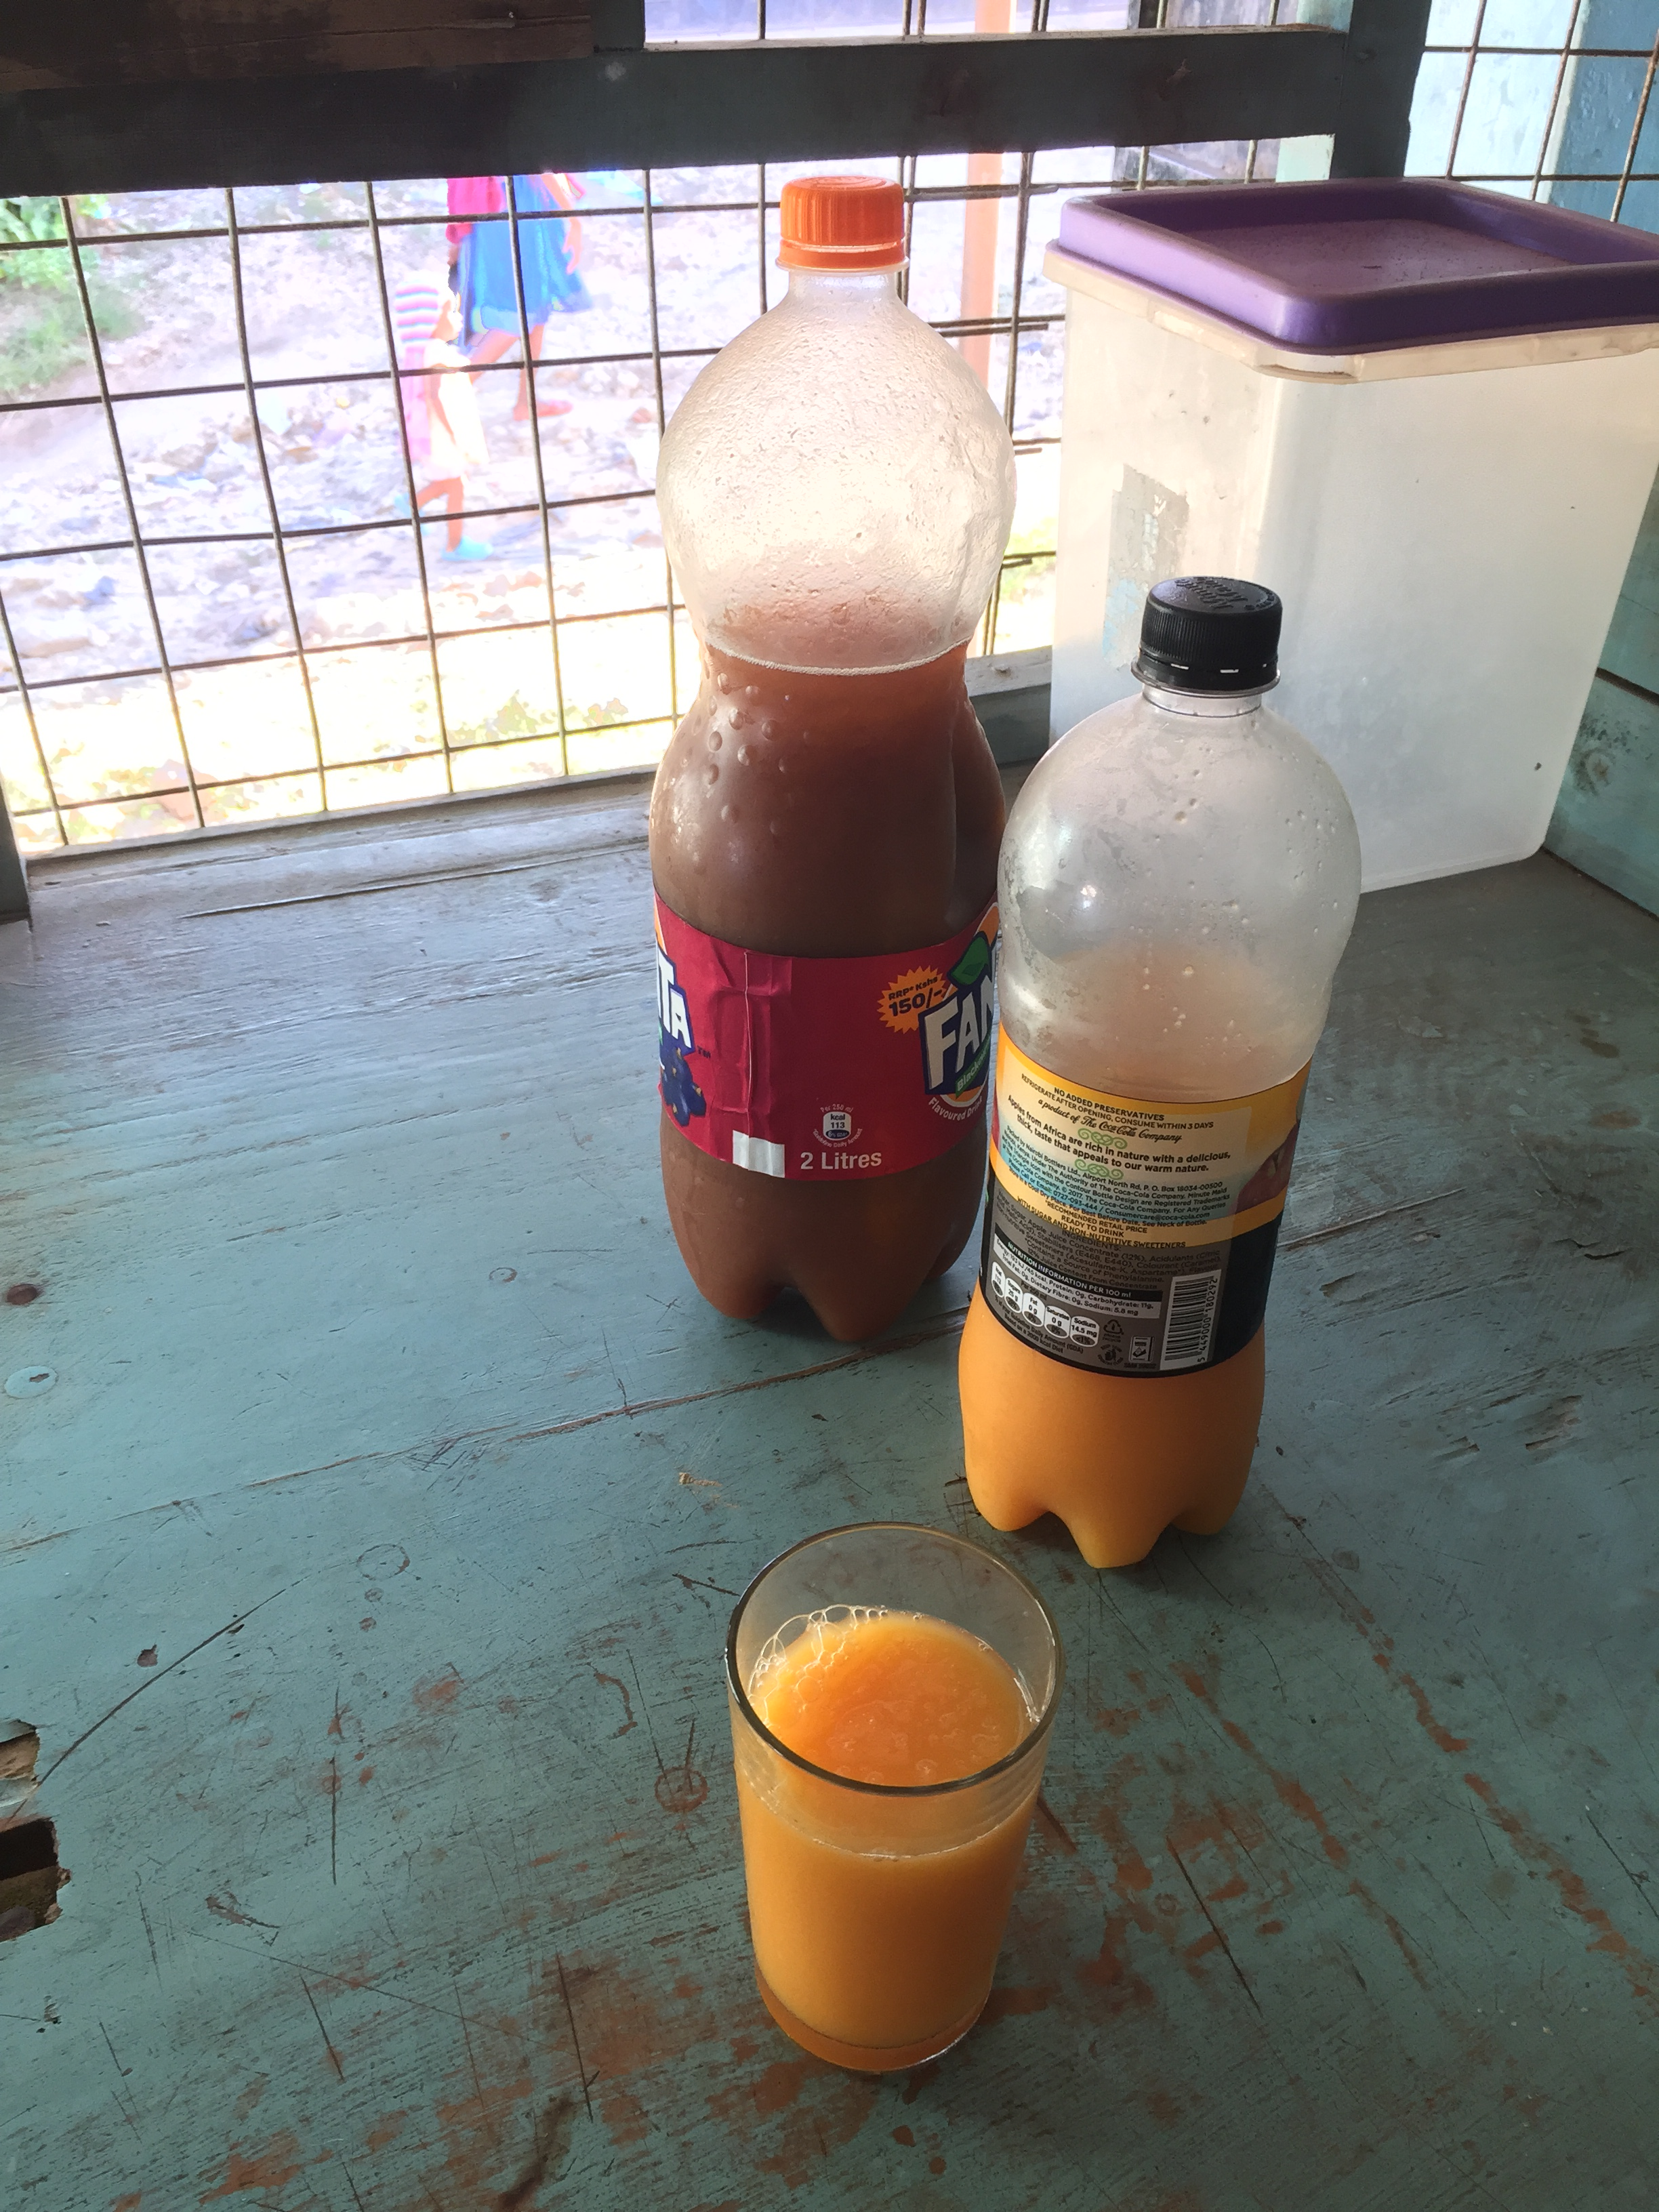 Two plastic bottles, one filled with tamarind juice and the other passionfruit, with a glass in foreground filled with passionfruit juice